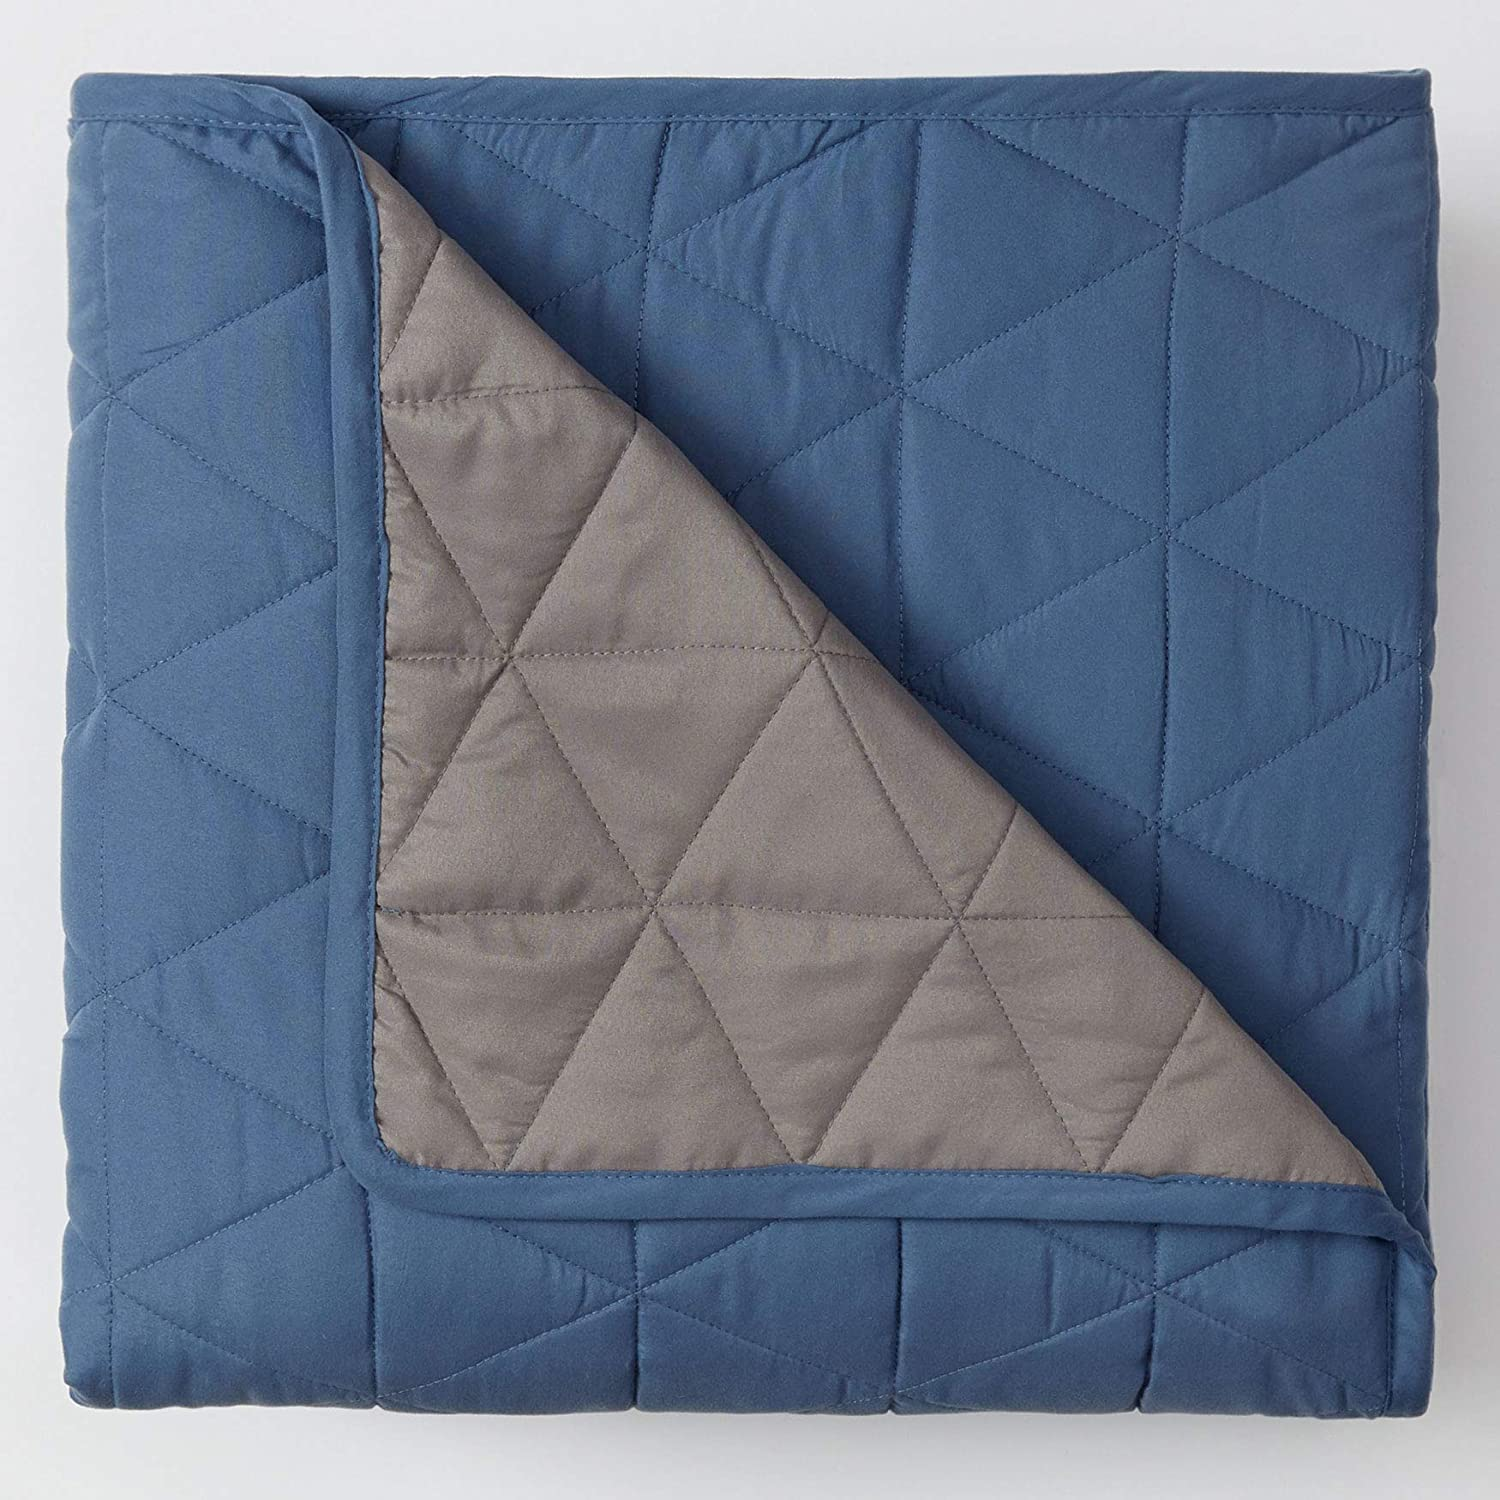 BrylaneHome Reversible Quilted Sham - SALENEW very popular Smoke King shop Blue Pack 2